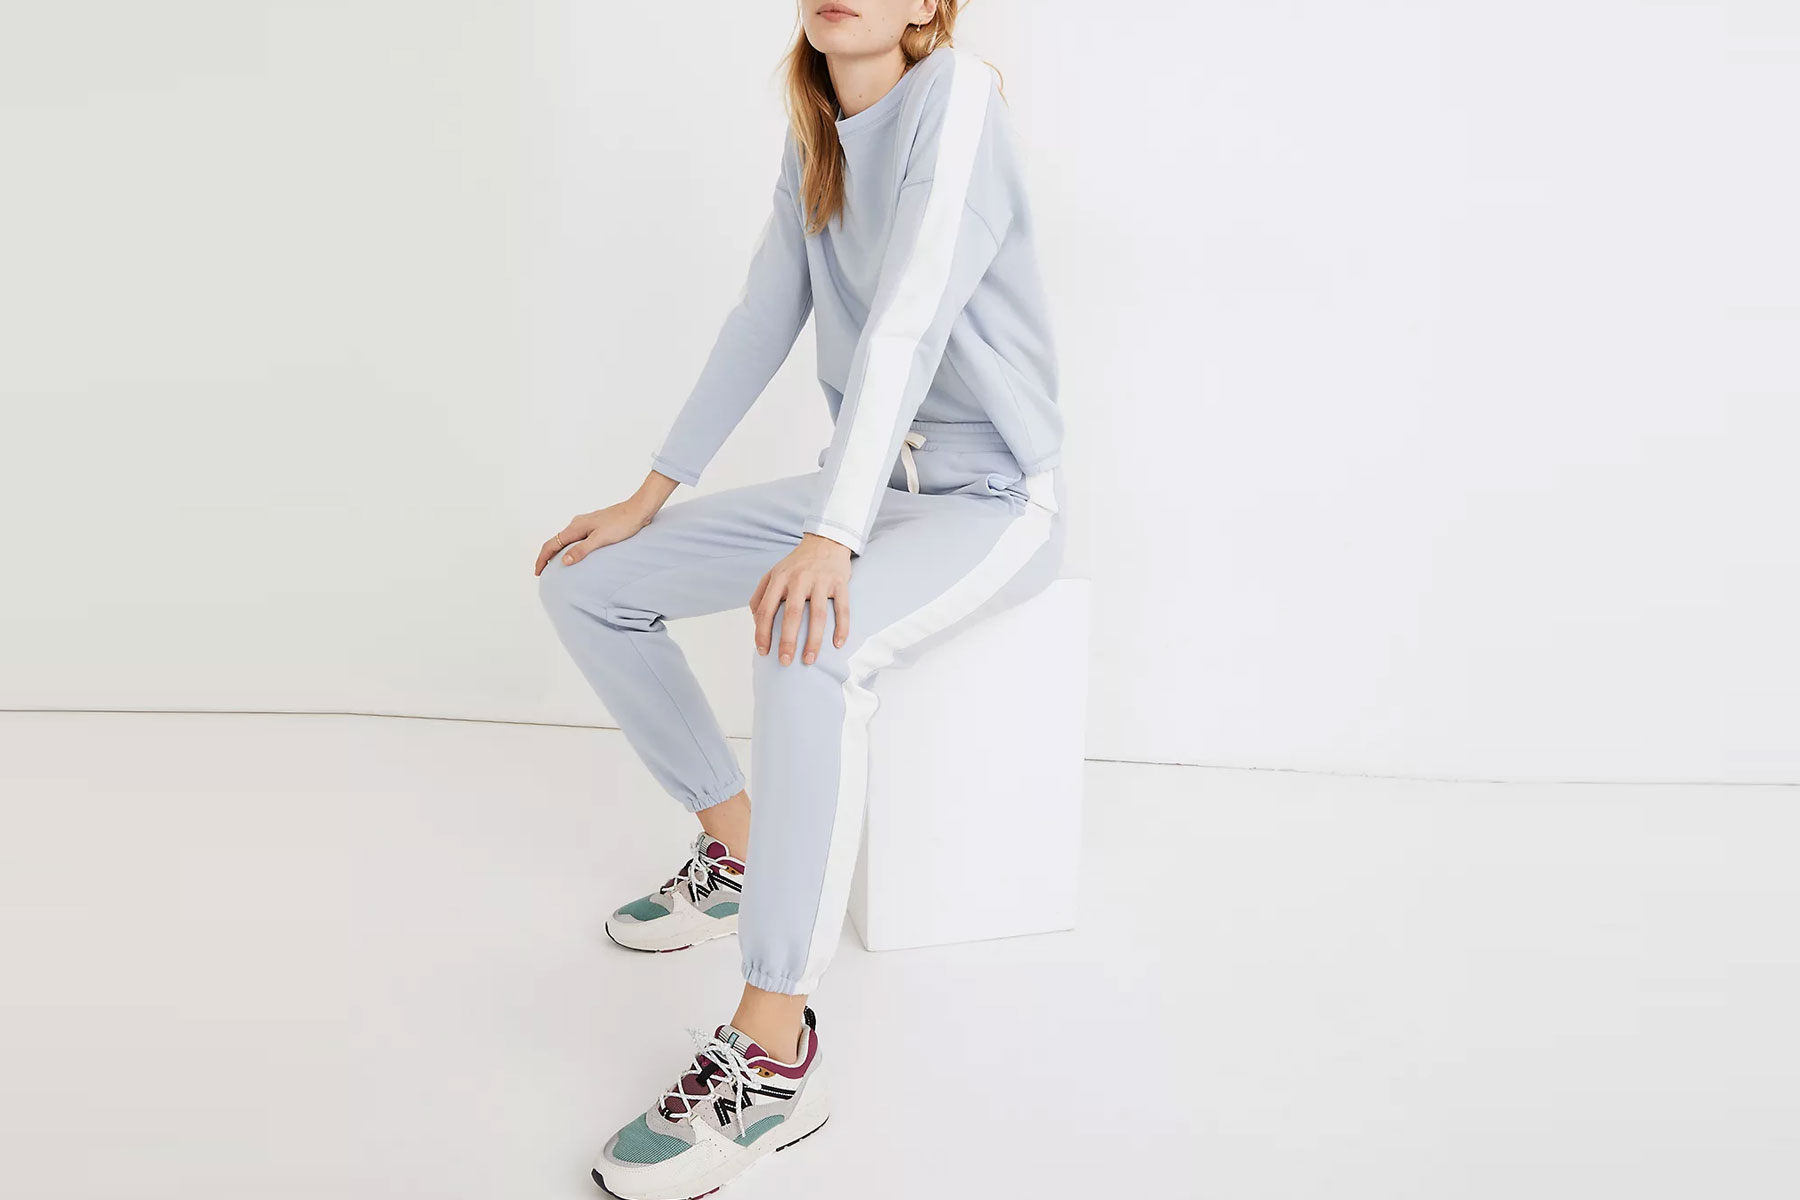 Blue and white striped sweatsuit